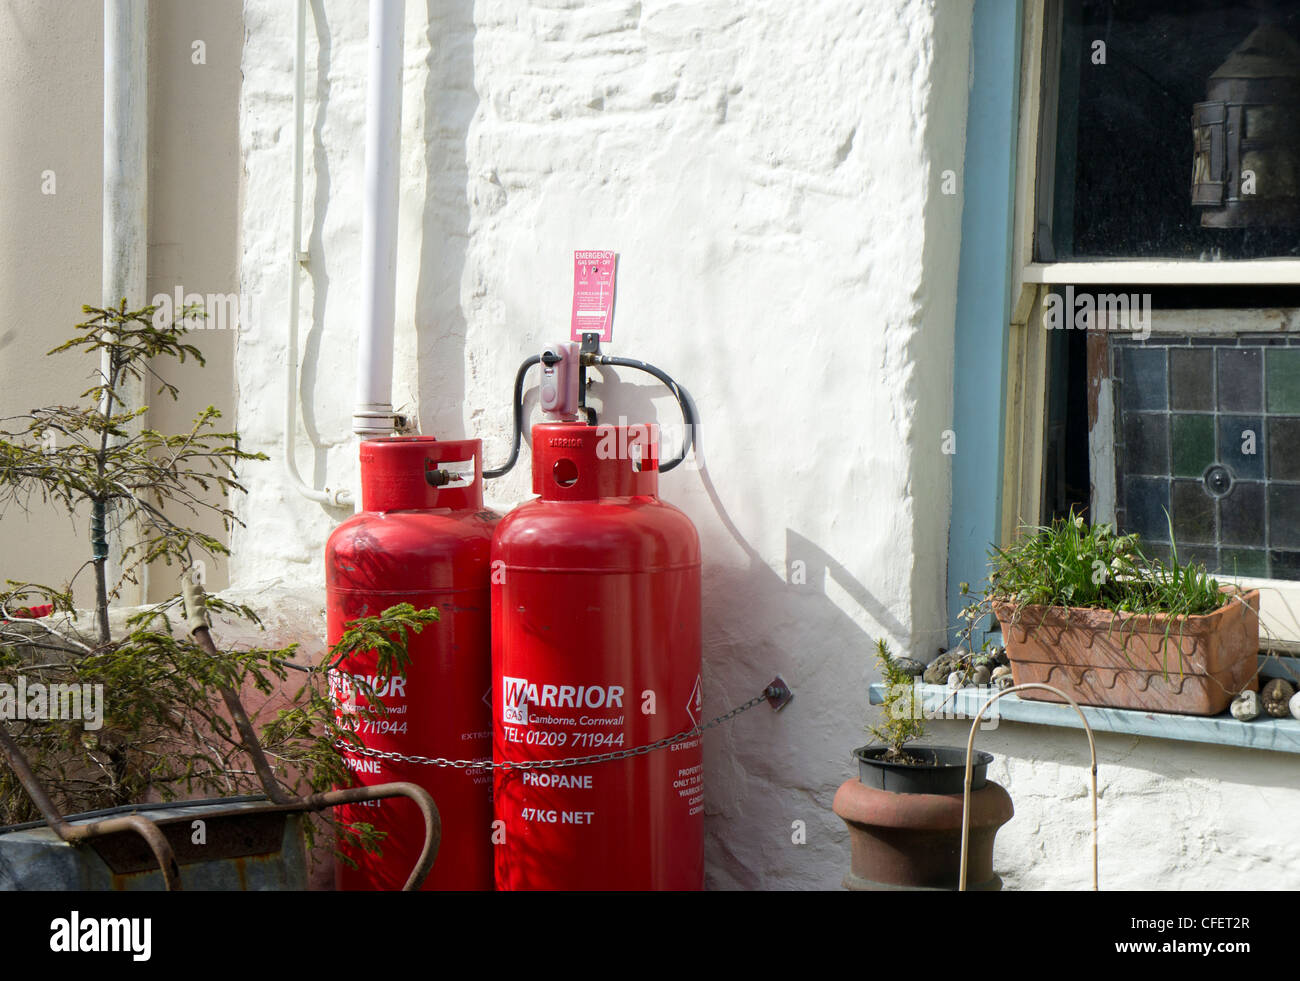 Propane gas bottles being used to supply gas for domestic cooking in a cottage in cornwall, uk - Stock Image